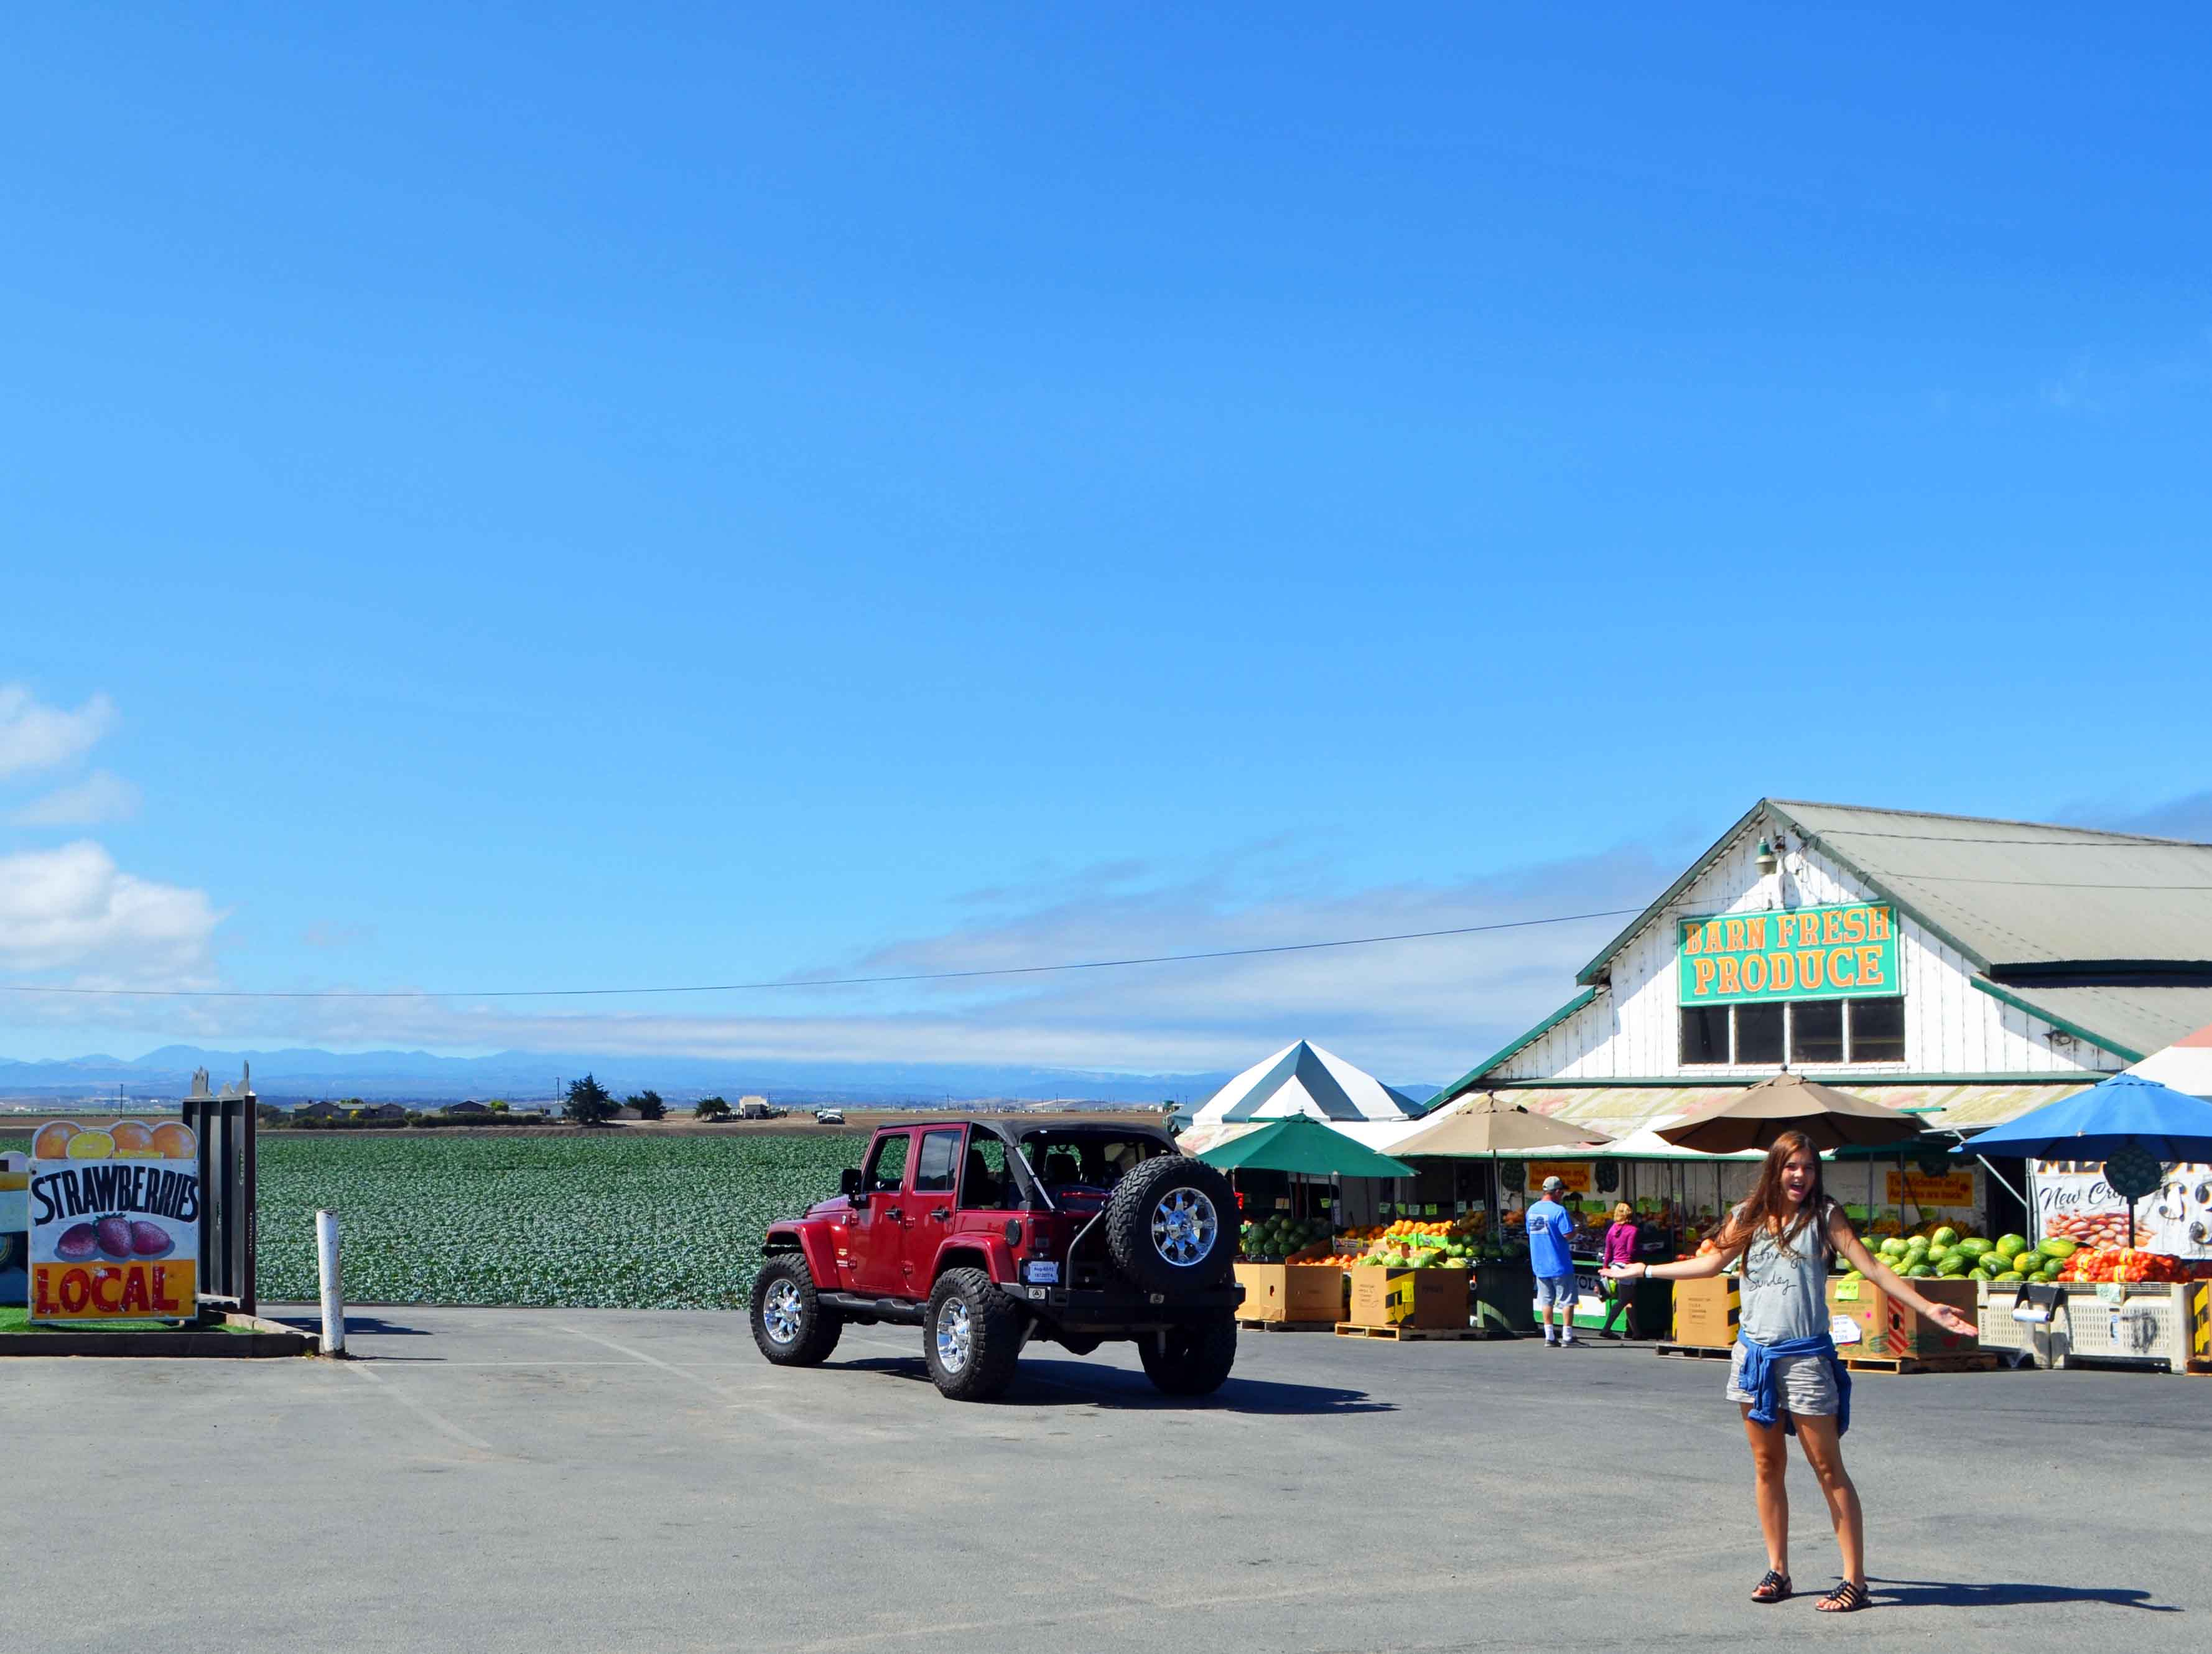 Farmer's Markets California Pacific Coast Highway 1 Road Trip Guide